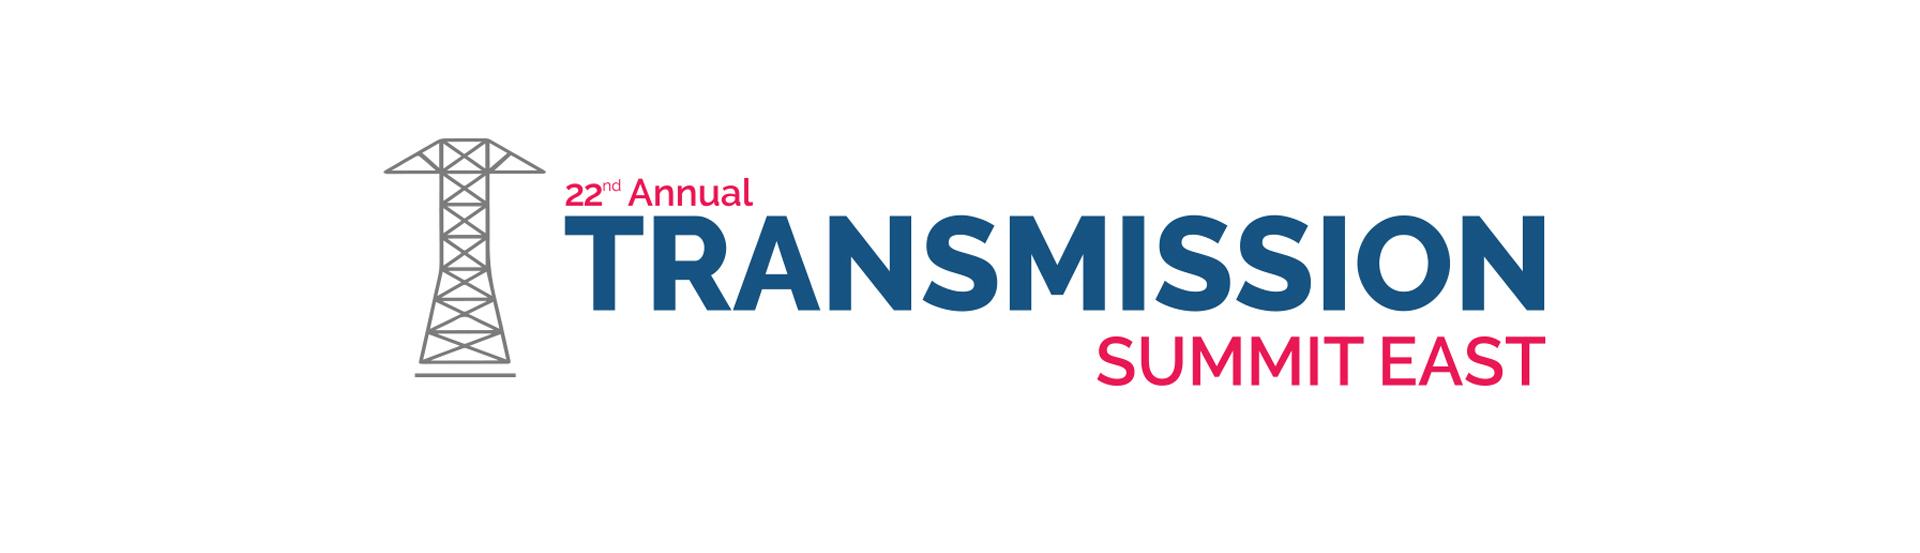 22nd annual transmission summit